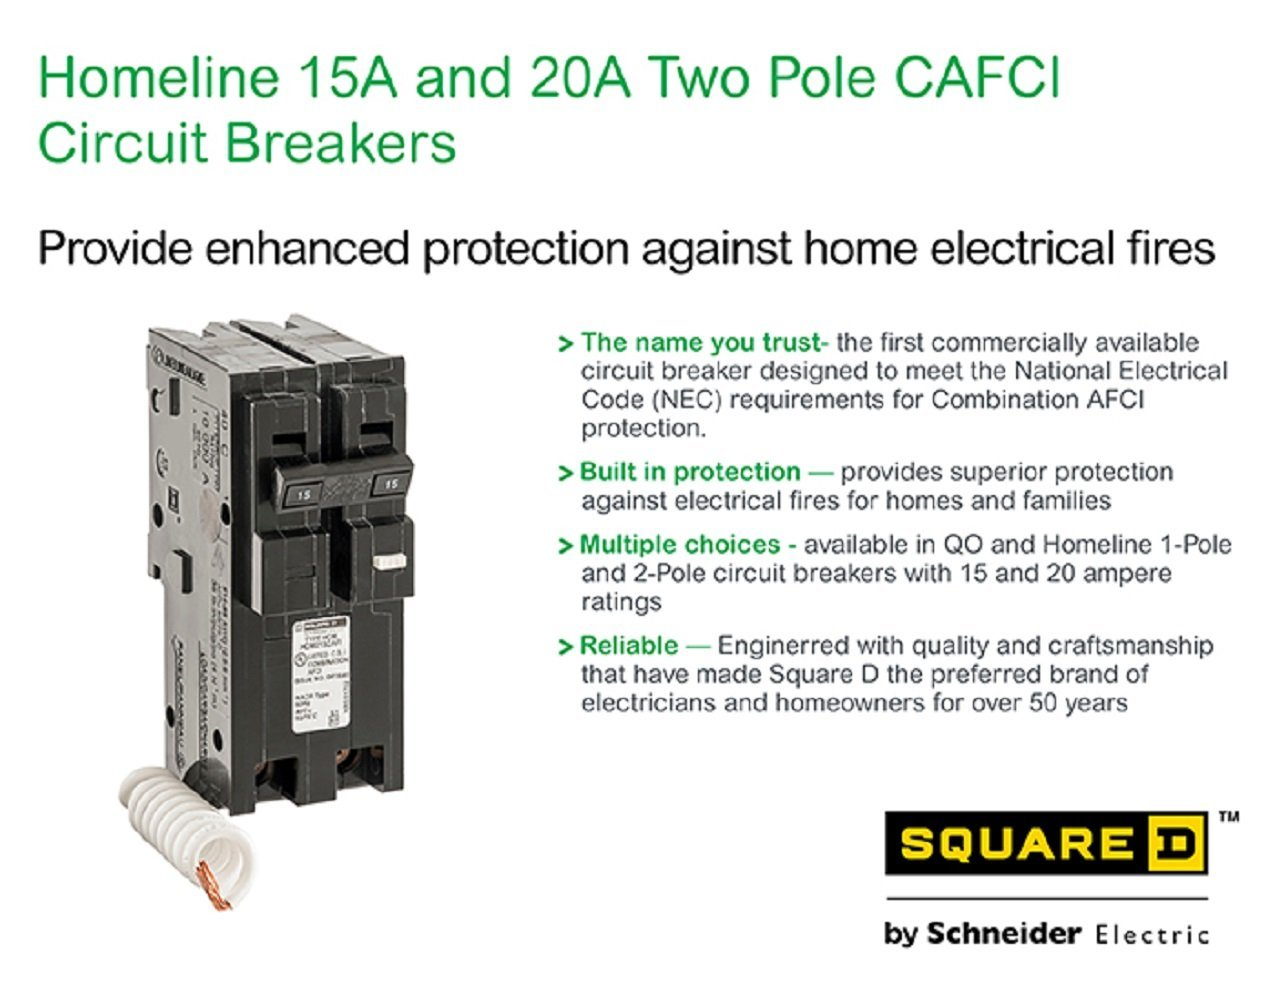 Square D By Schneider Electric Hom220cafic Homeline 20 Amp Two Pole Fastest 14 Bit Sample And Hold Amplifier Cafci Circuit Breaker